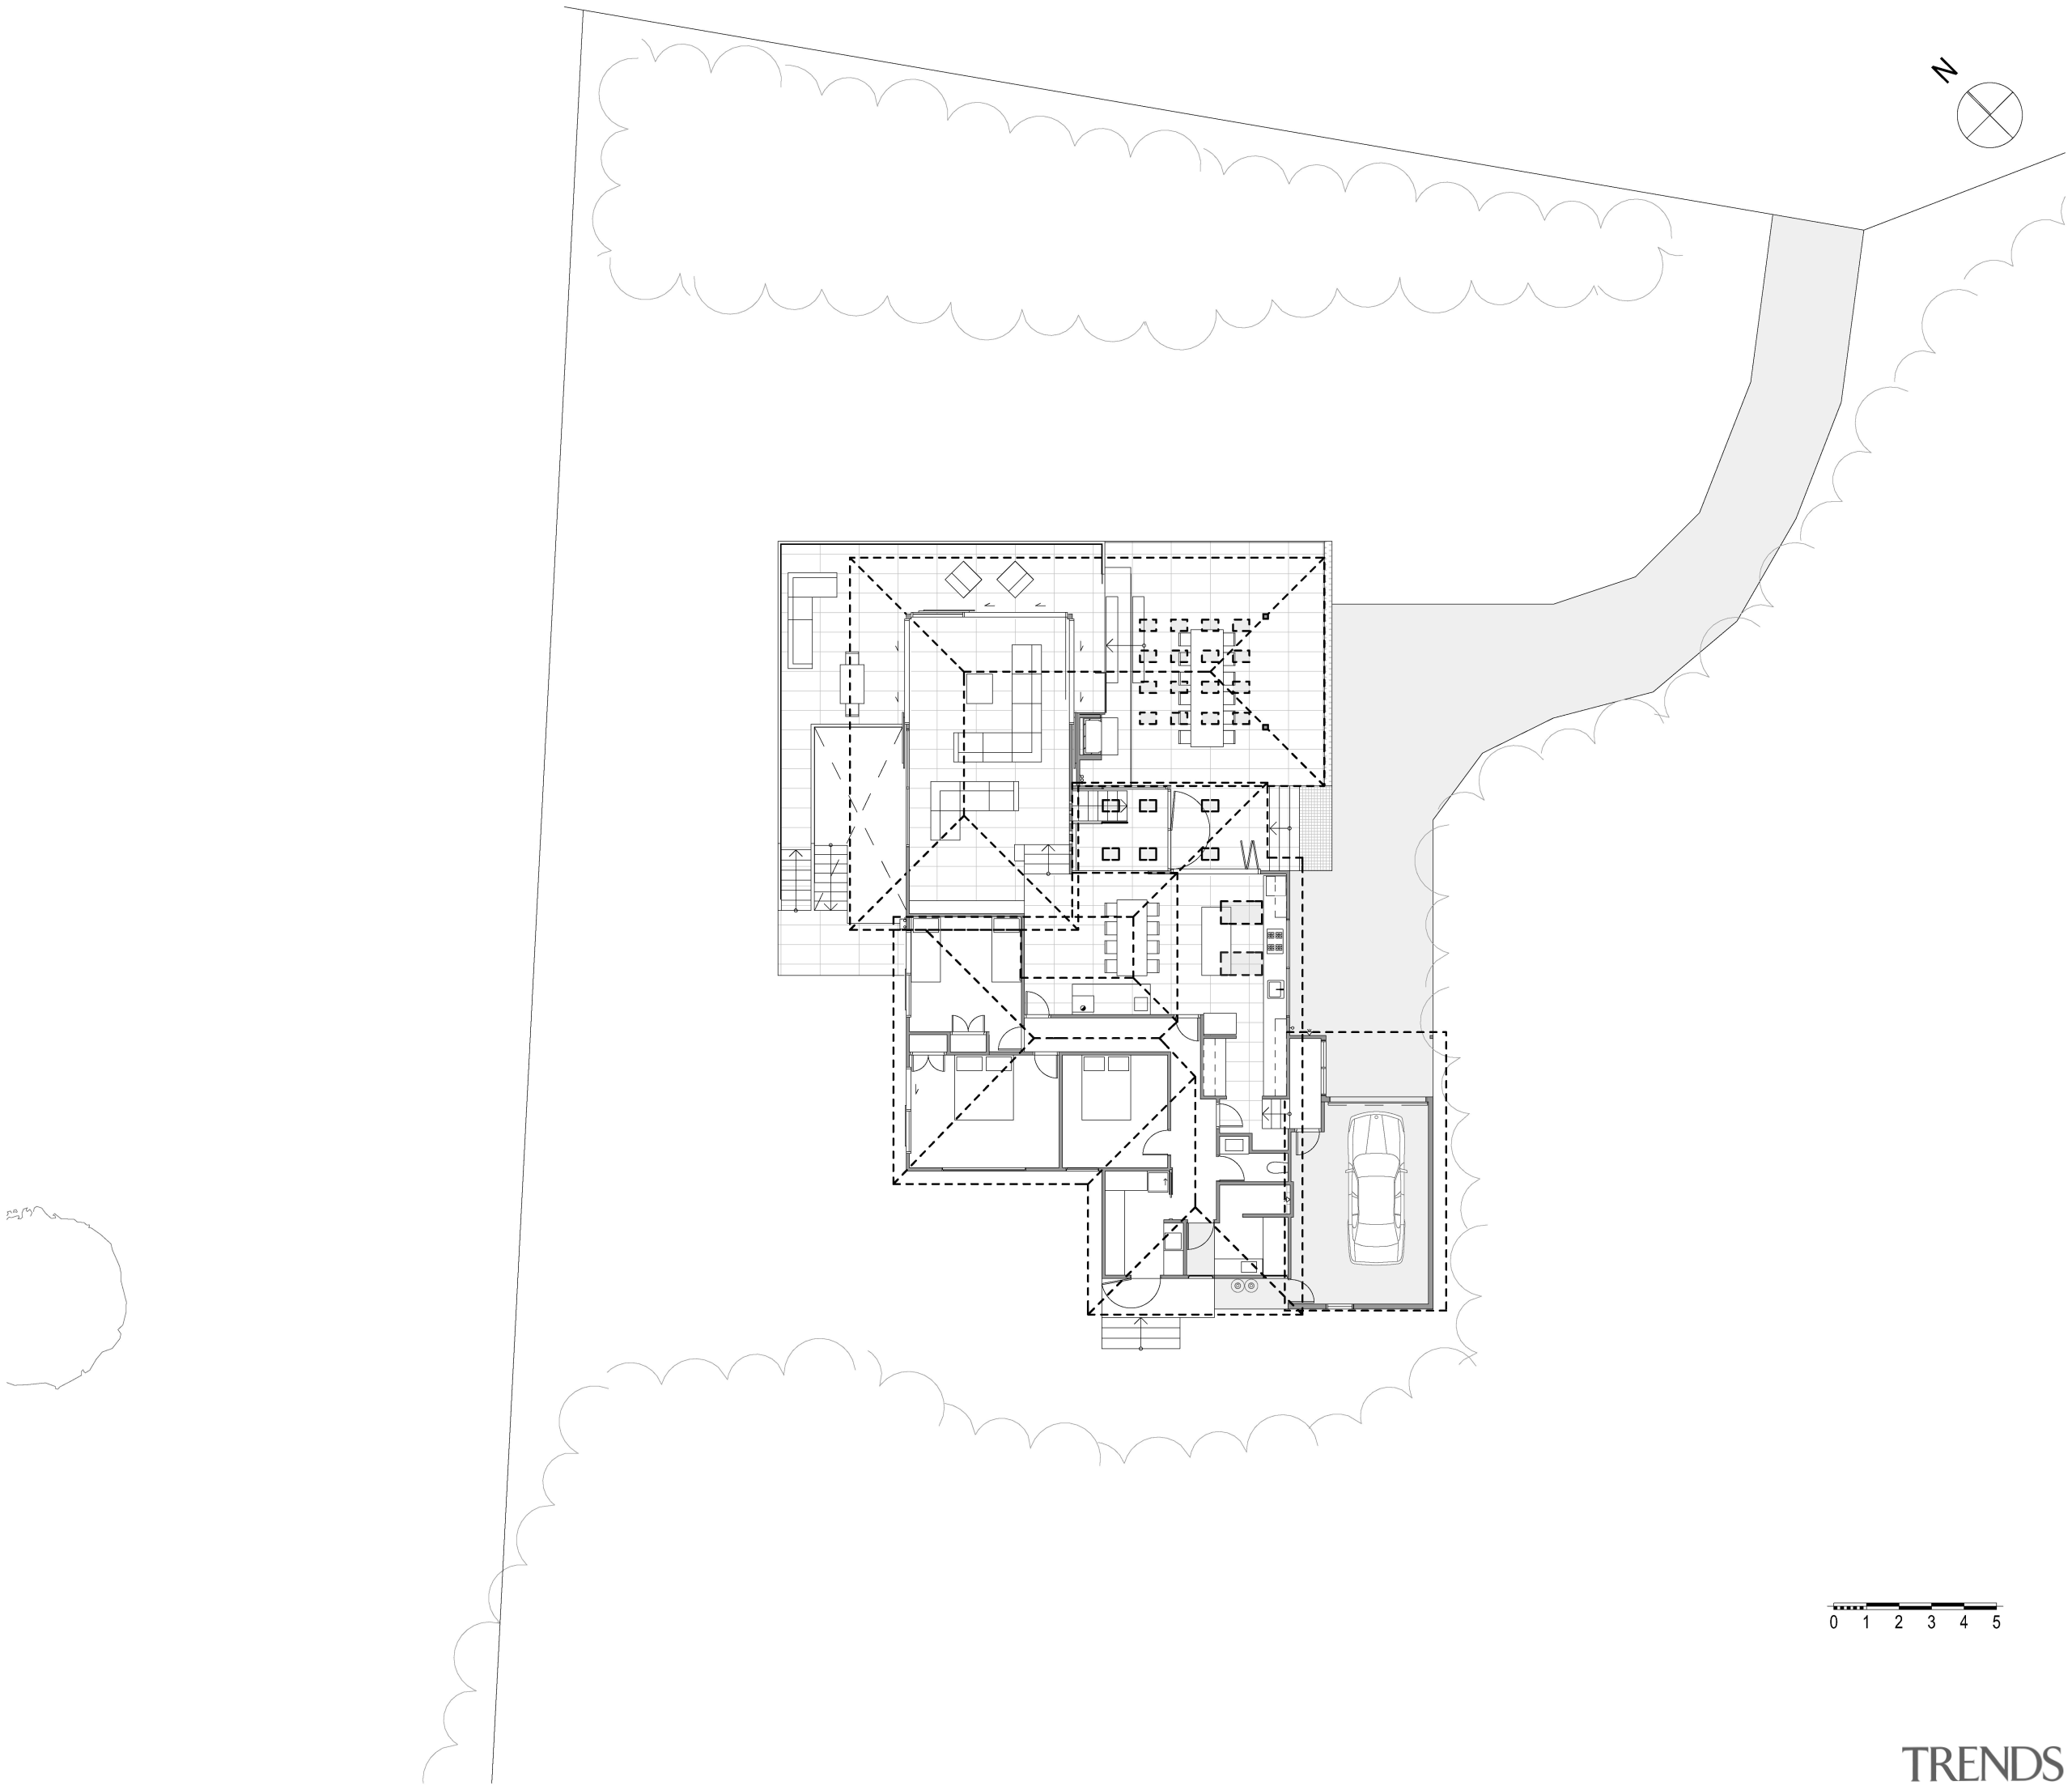 The front section of this renovated home  angle, architecture, area, black and white, design, diagram, drawing, floor plan, font, line, map, plan, product design, structure, text, white